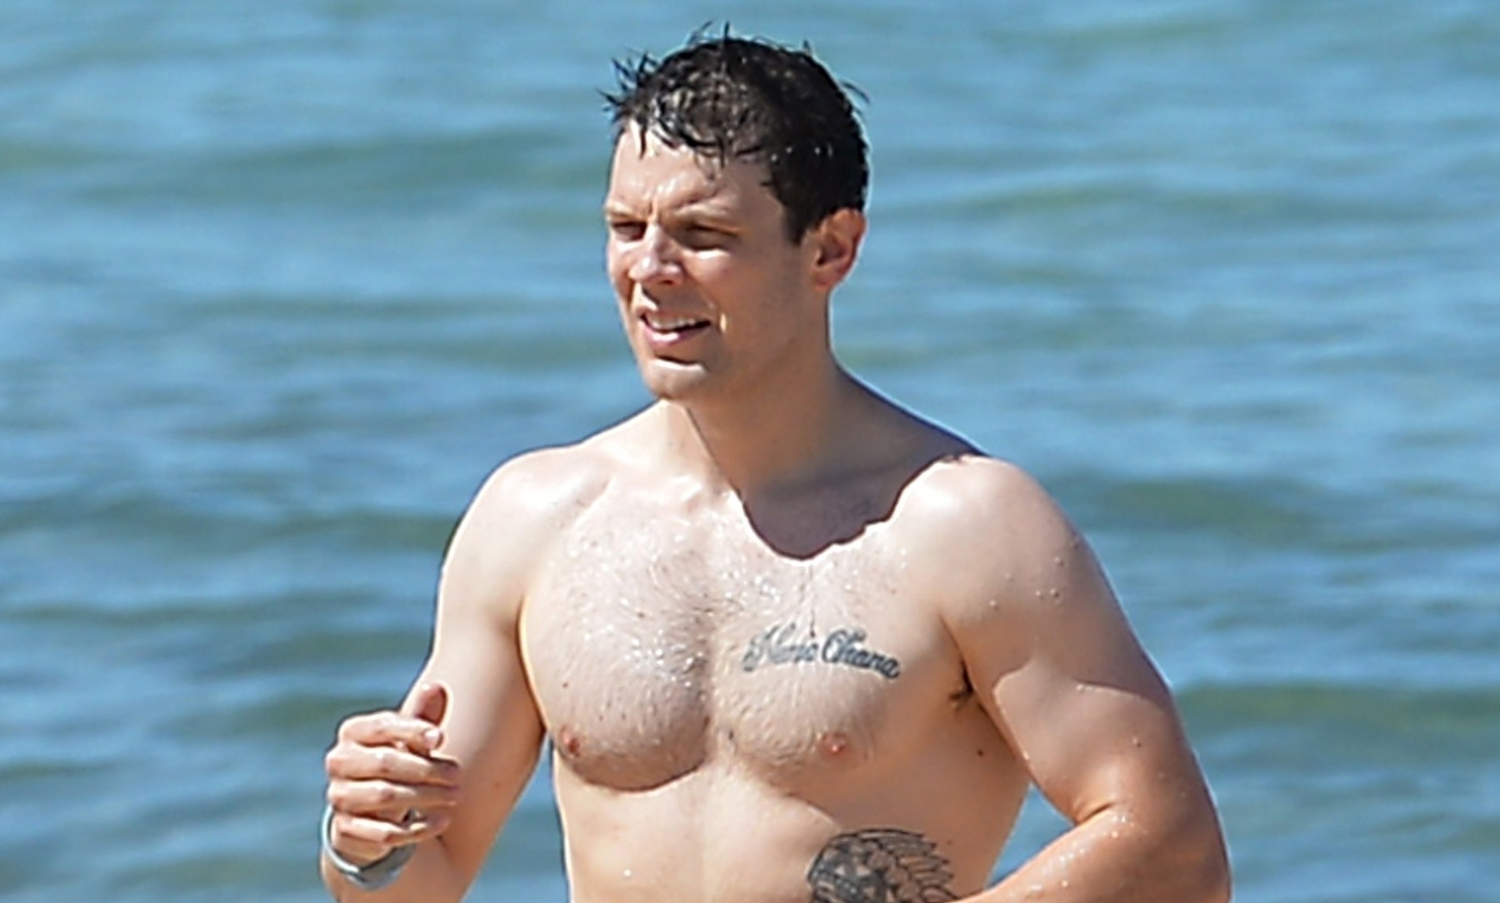 Jake Lacy Looks So Hot While Shirtless at the Beach in Hawaii!